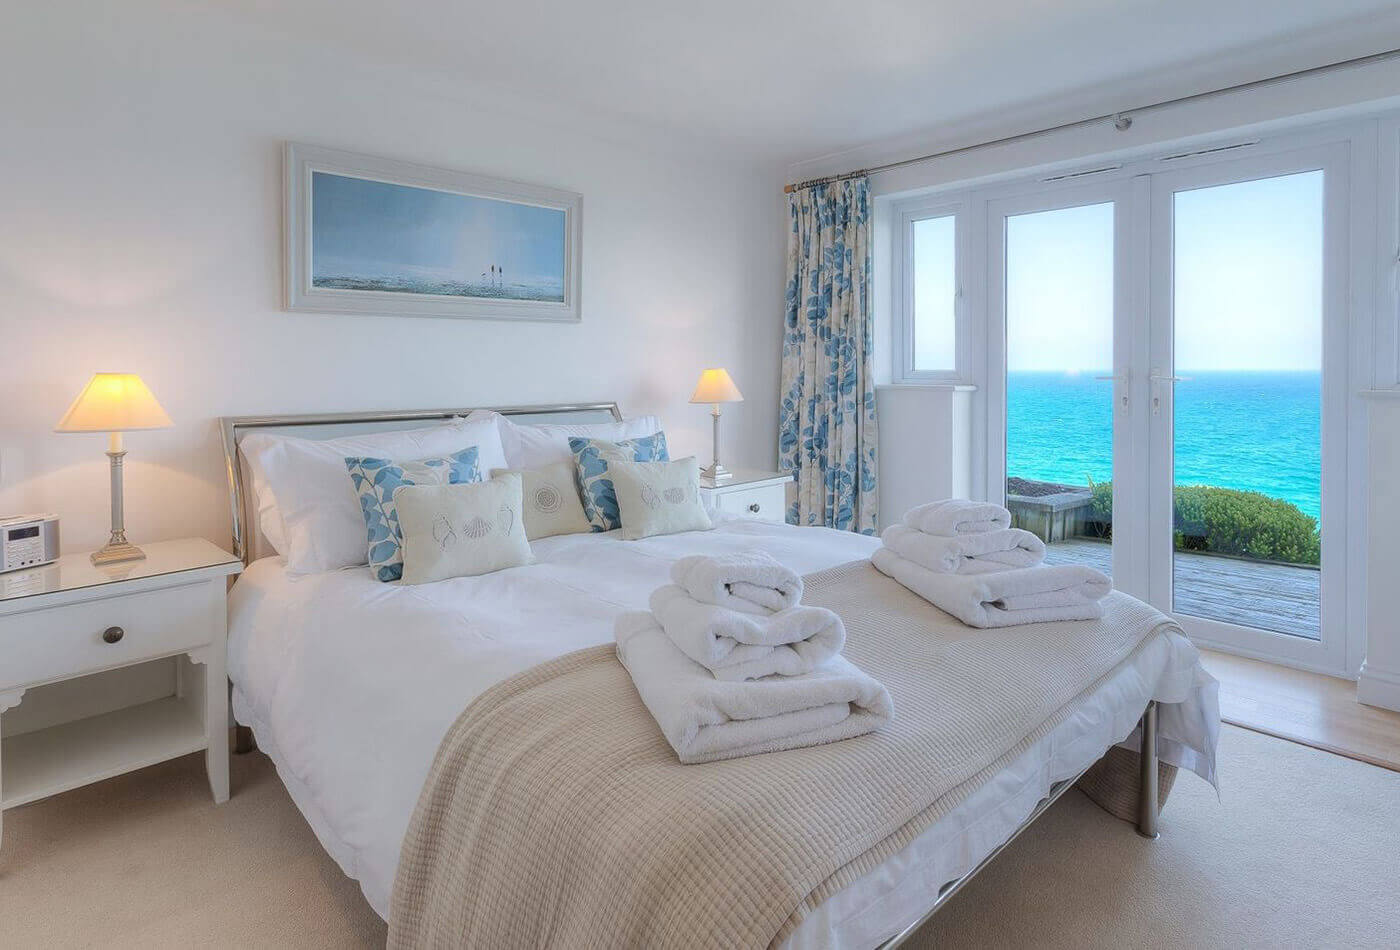 cornish brands, styling your holiday home